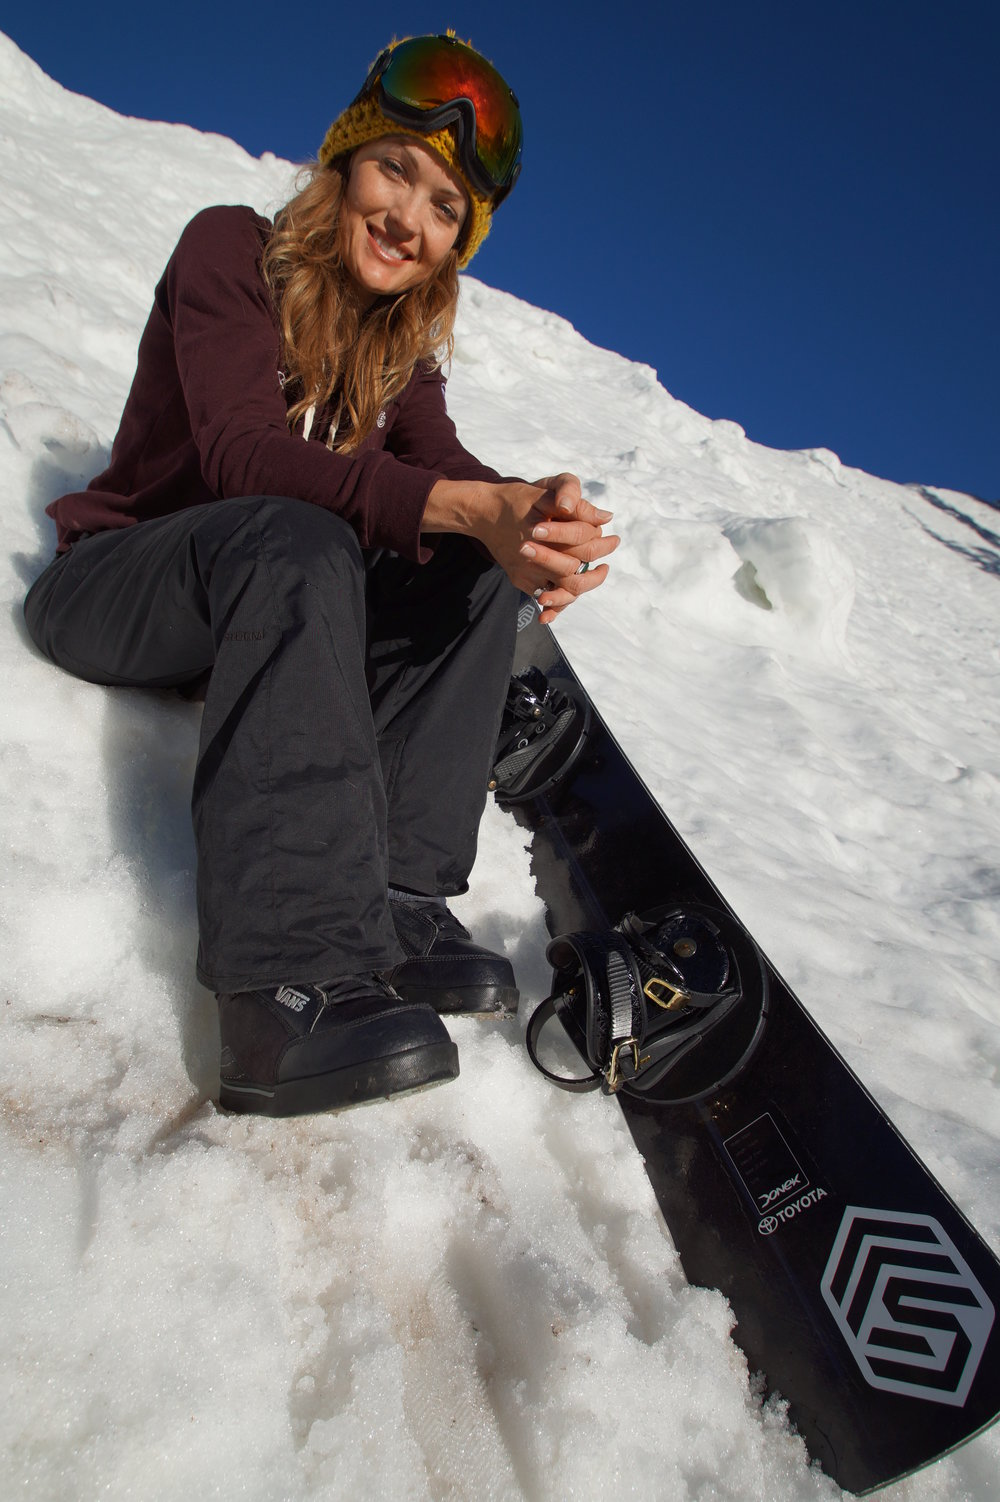 Amy purdy , World class snowboarder, motivational speaker